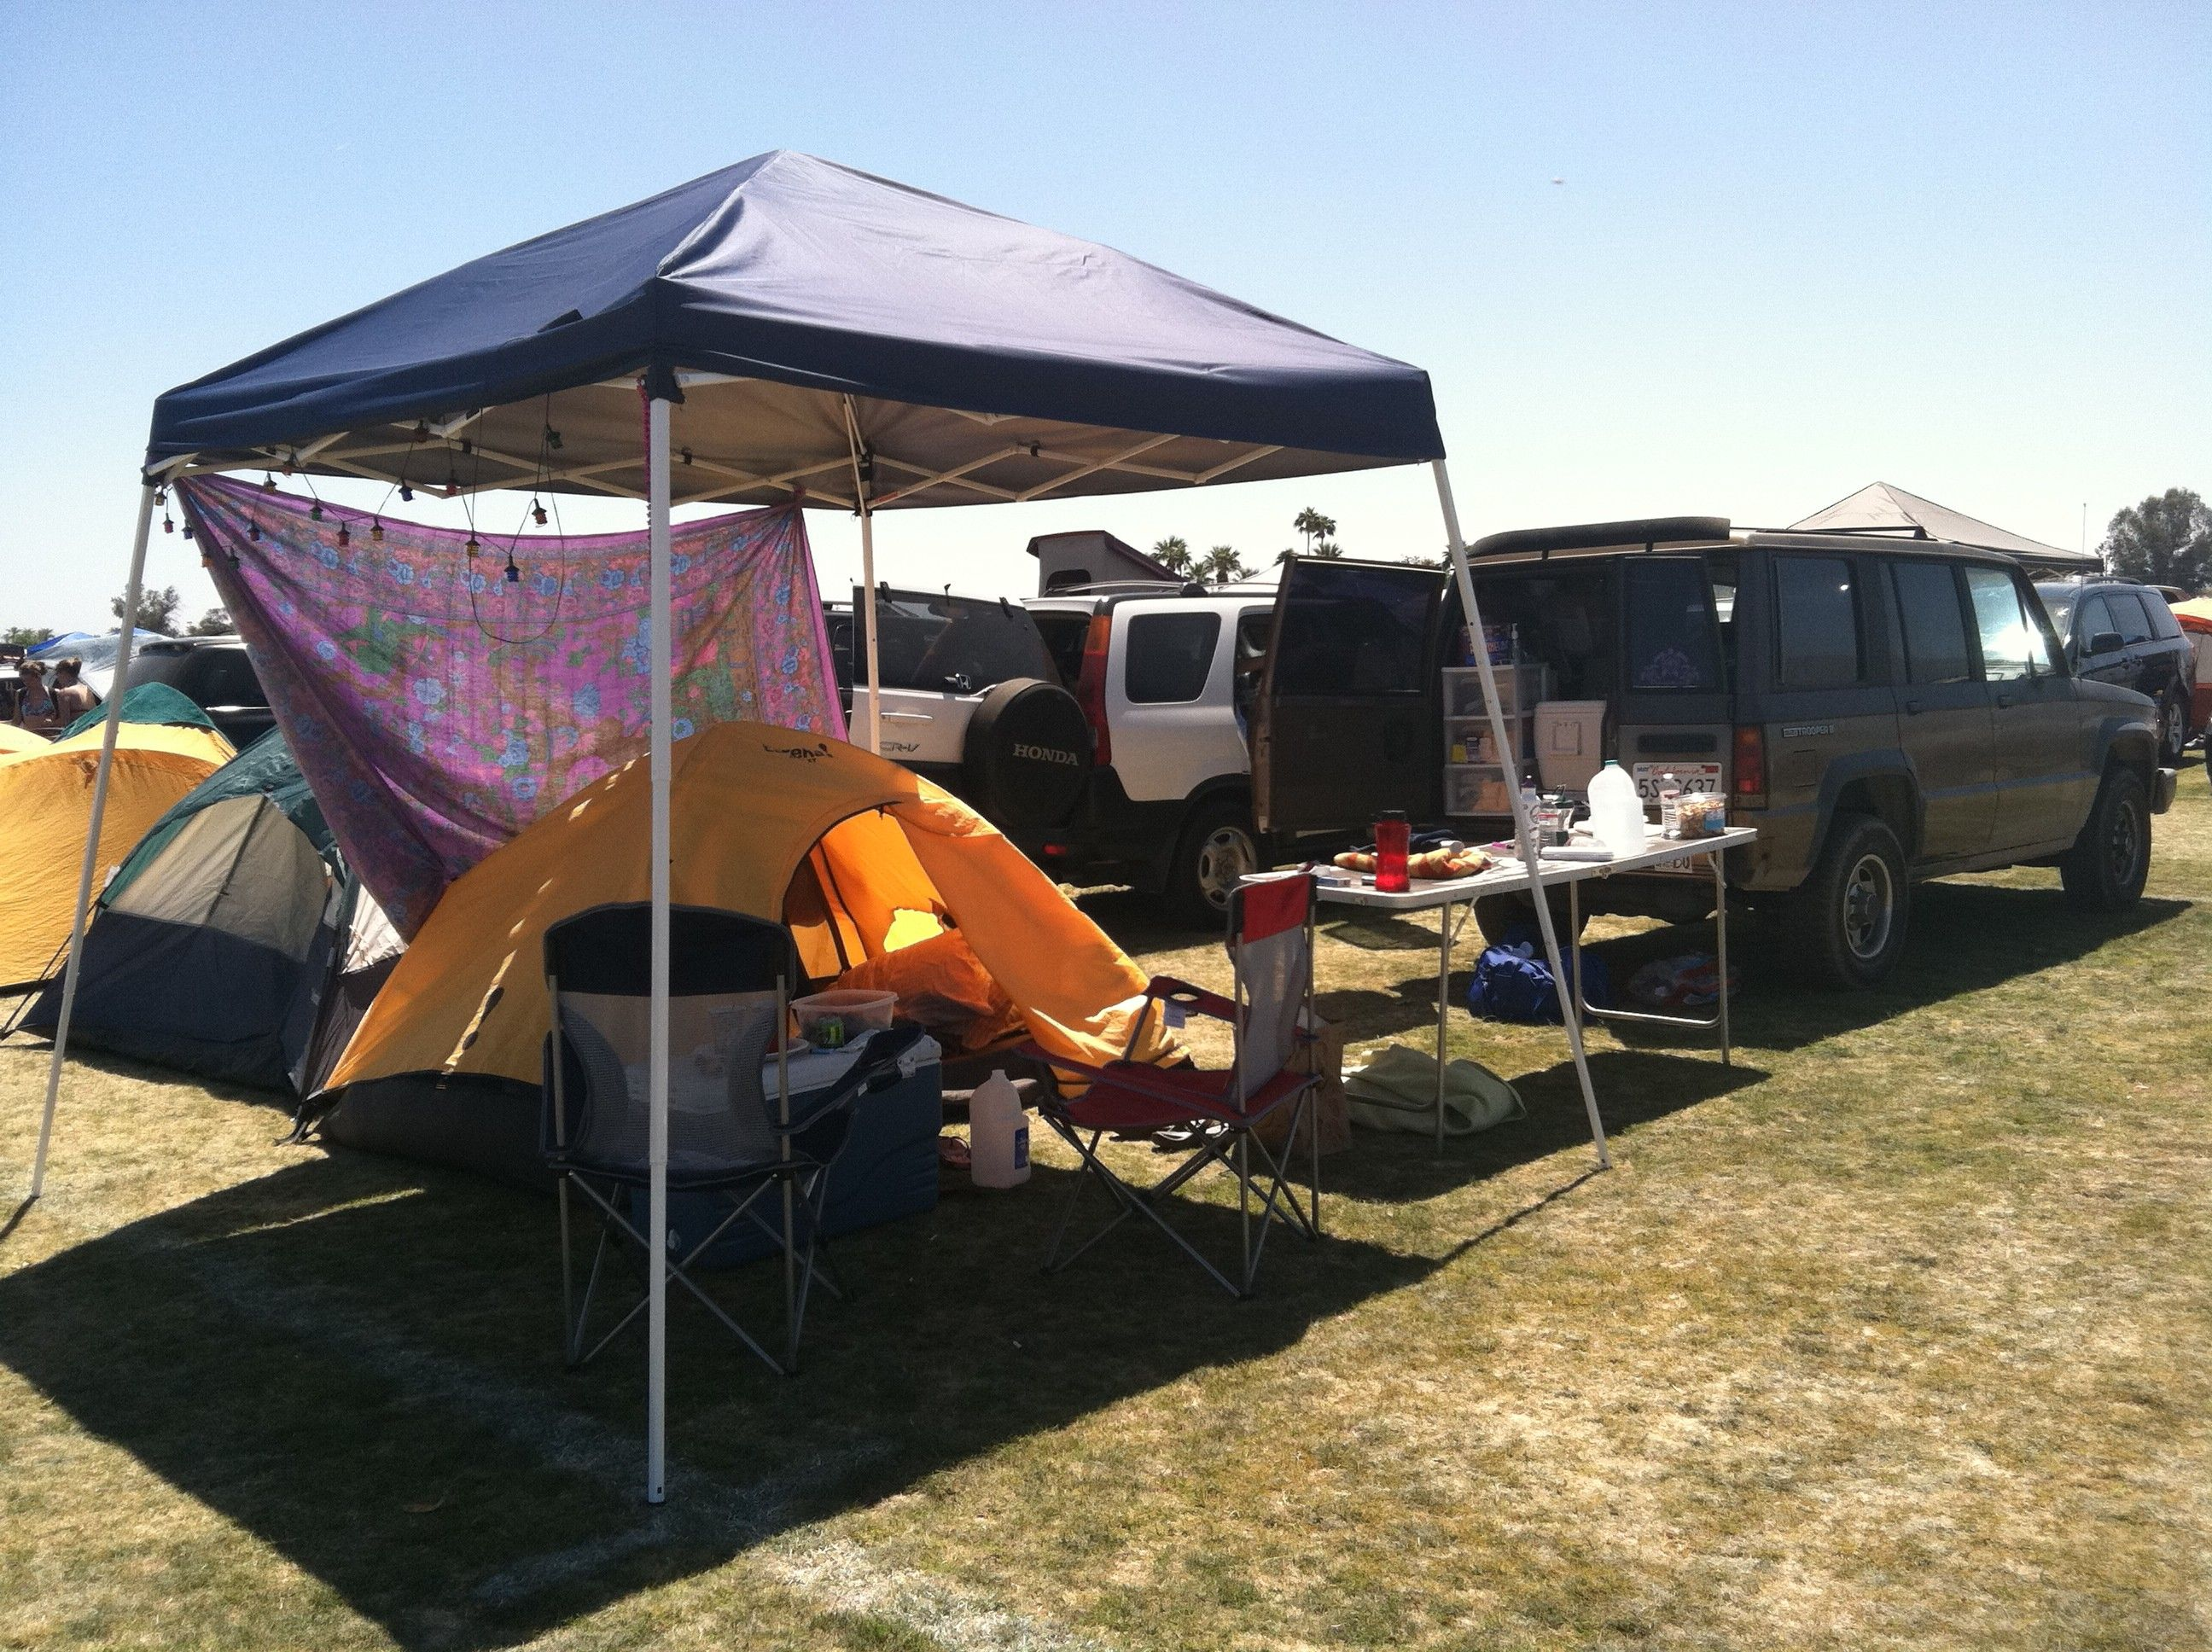 Coachella Car-Camping - use sheets or shower curtains for privacy, protection from sun or rain ...